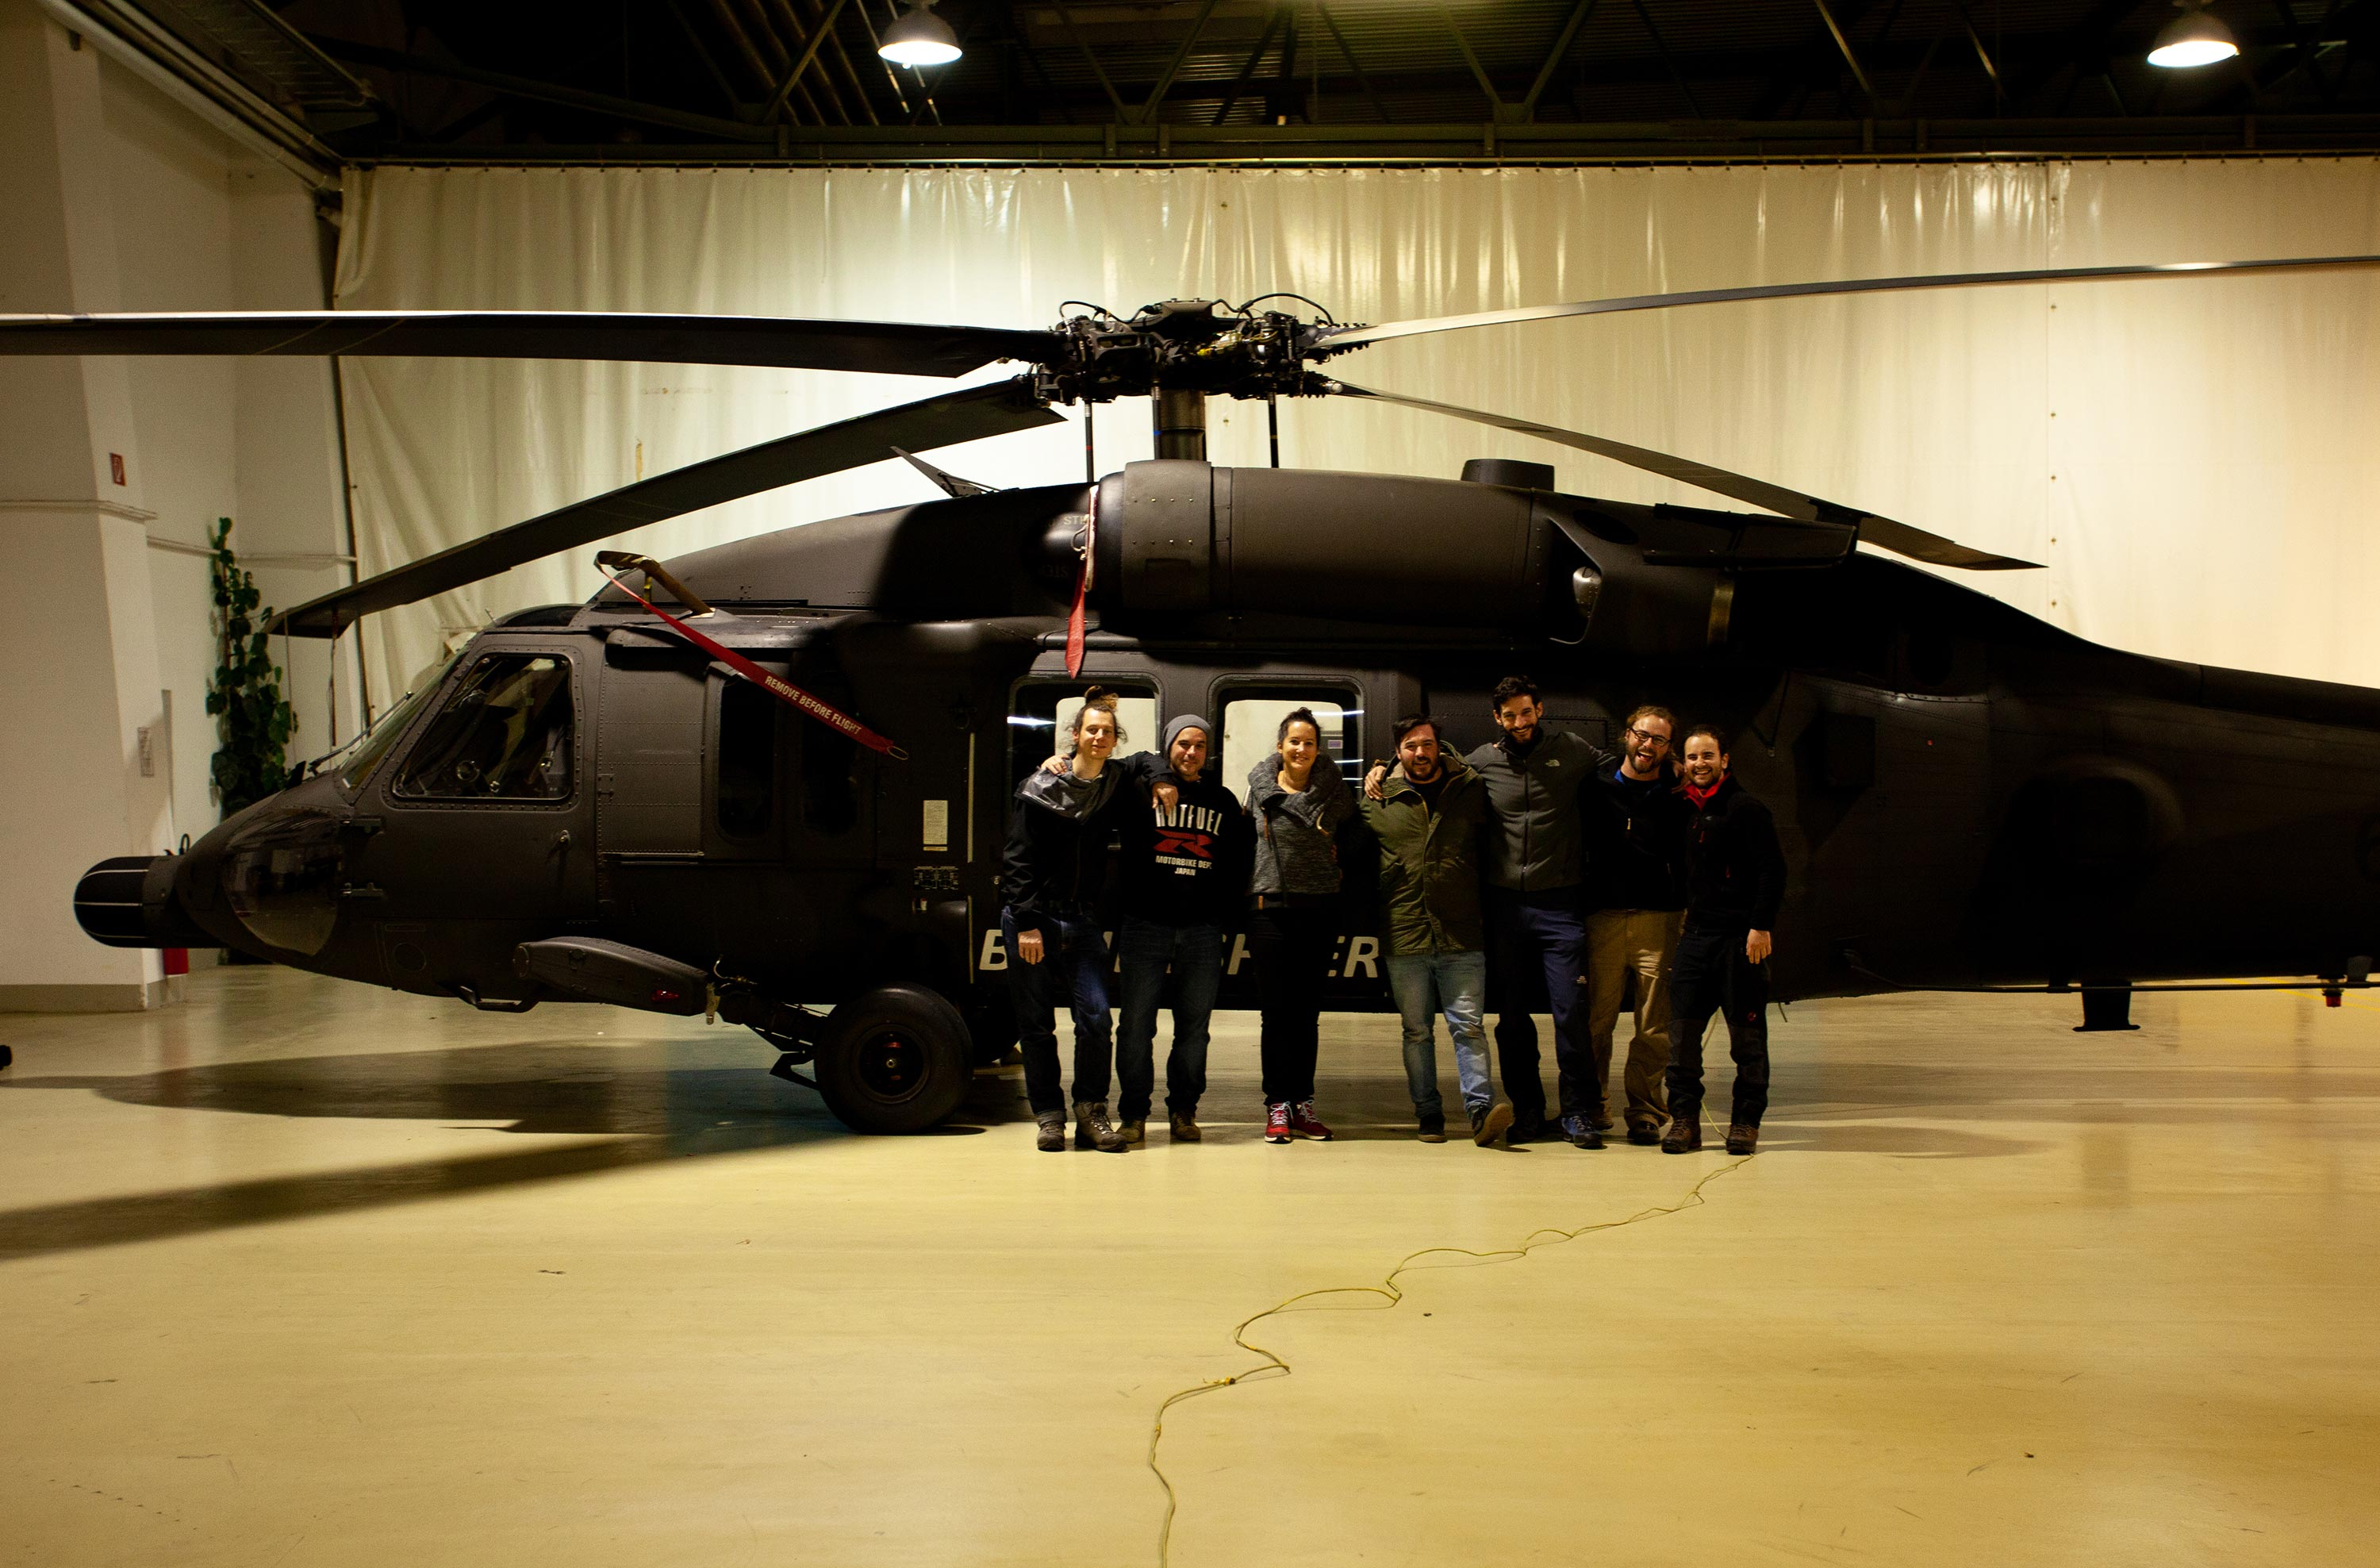 The whole 360 video production crew posing for a picture in front of a Black Hawk helicopter inside a hangar.